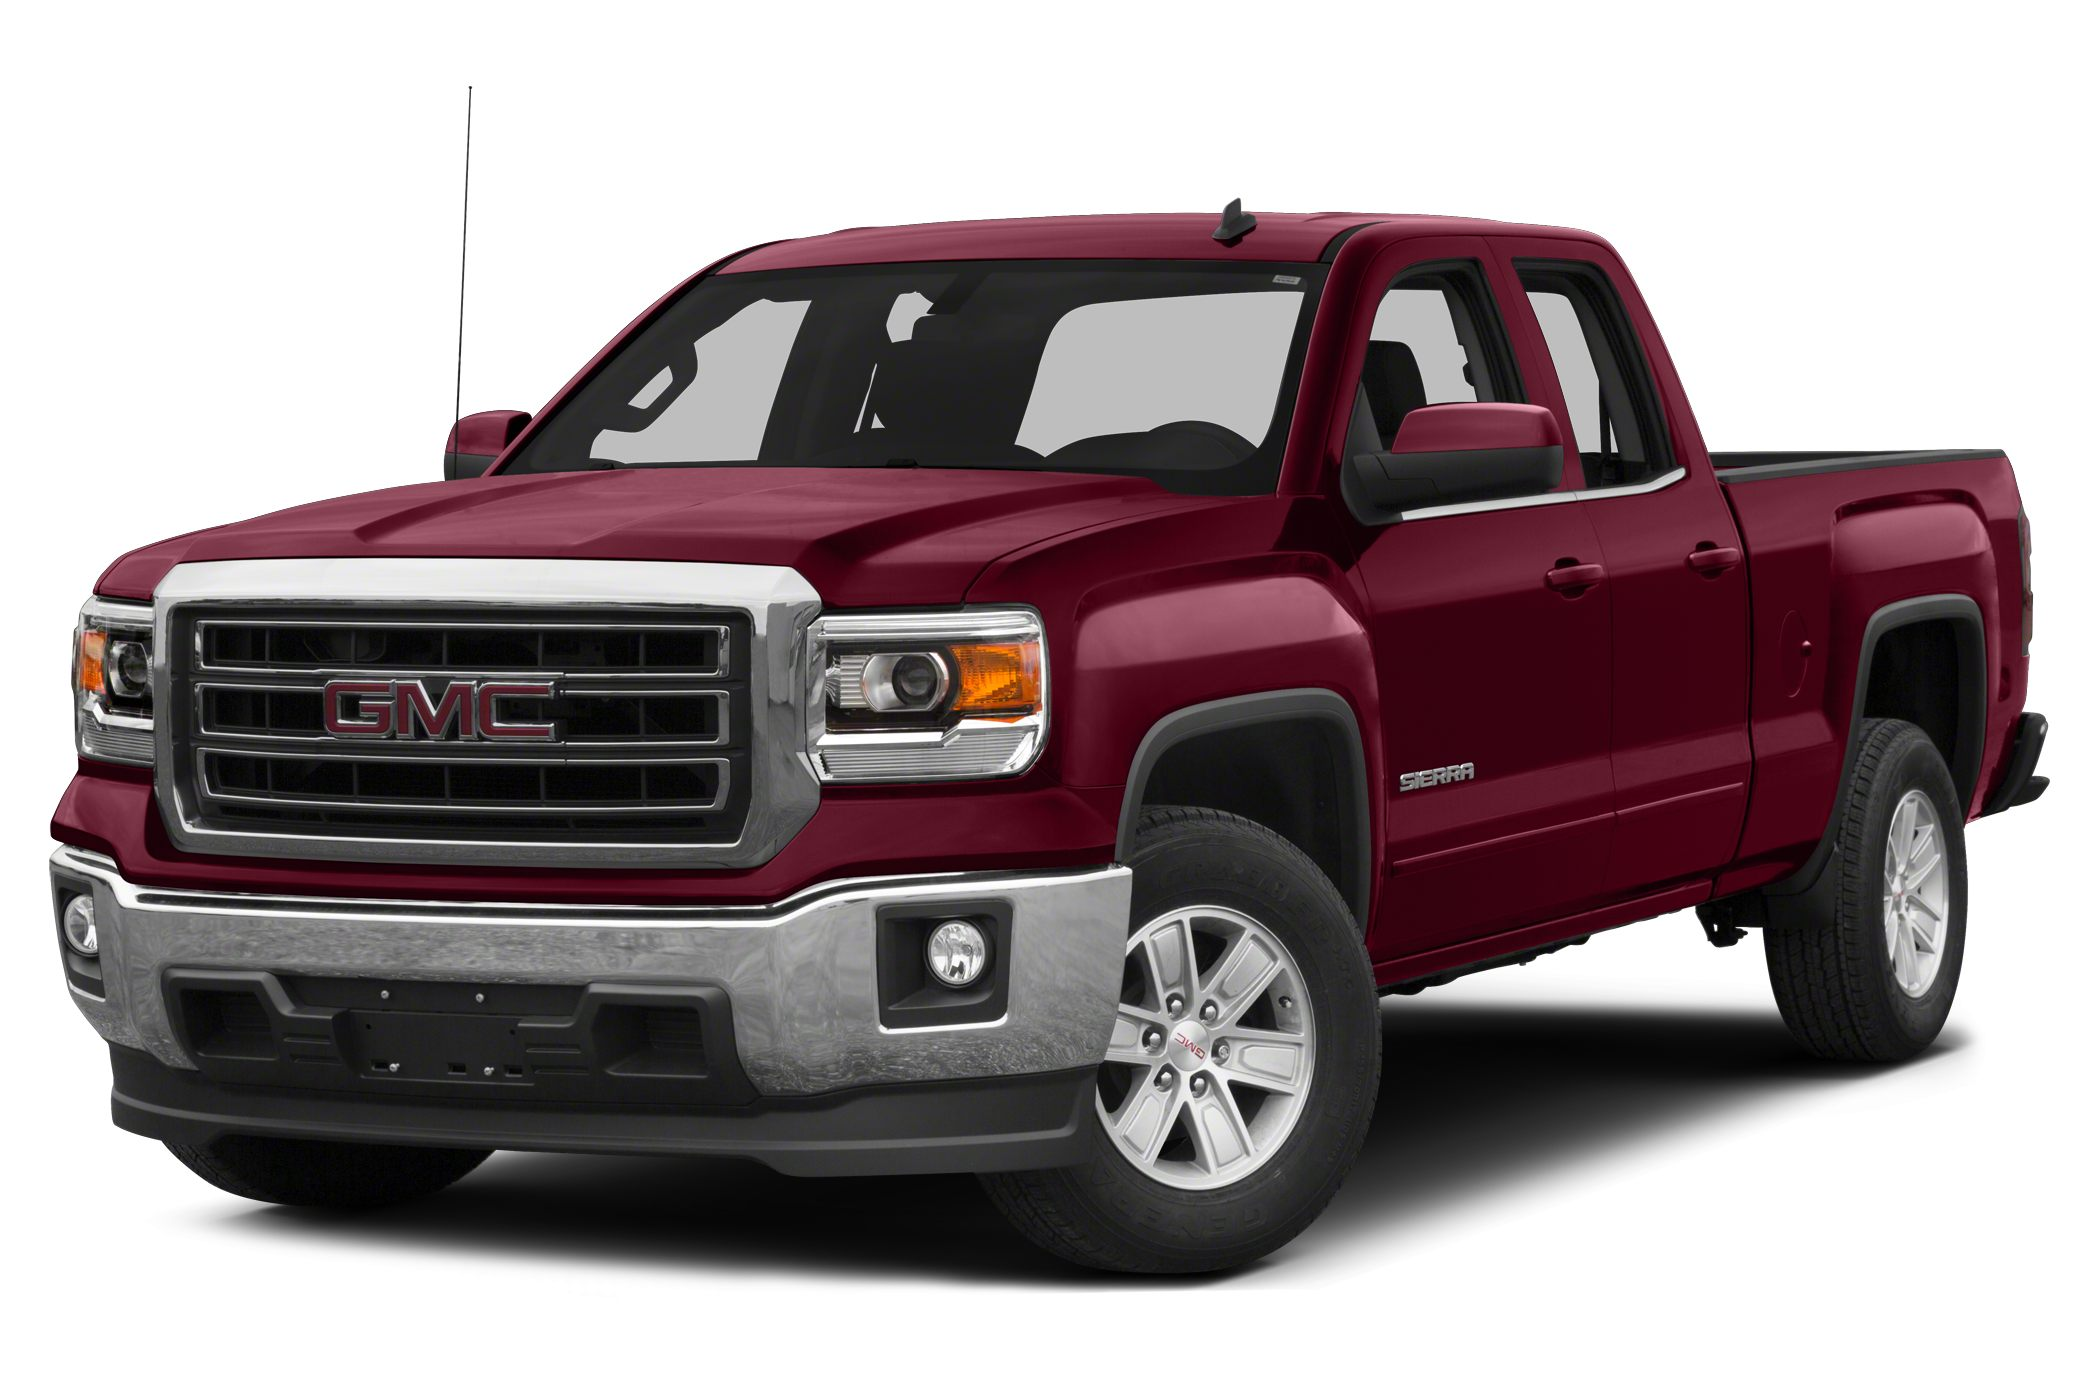 2015 GMC Sierra 1500 SLT Crew Cab Pickup for sale in Twin Falls for $0 with 1 miles